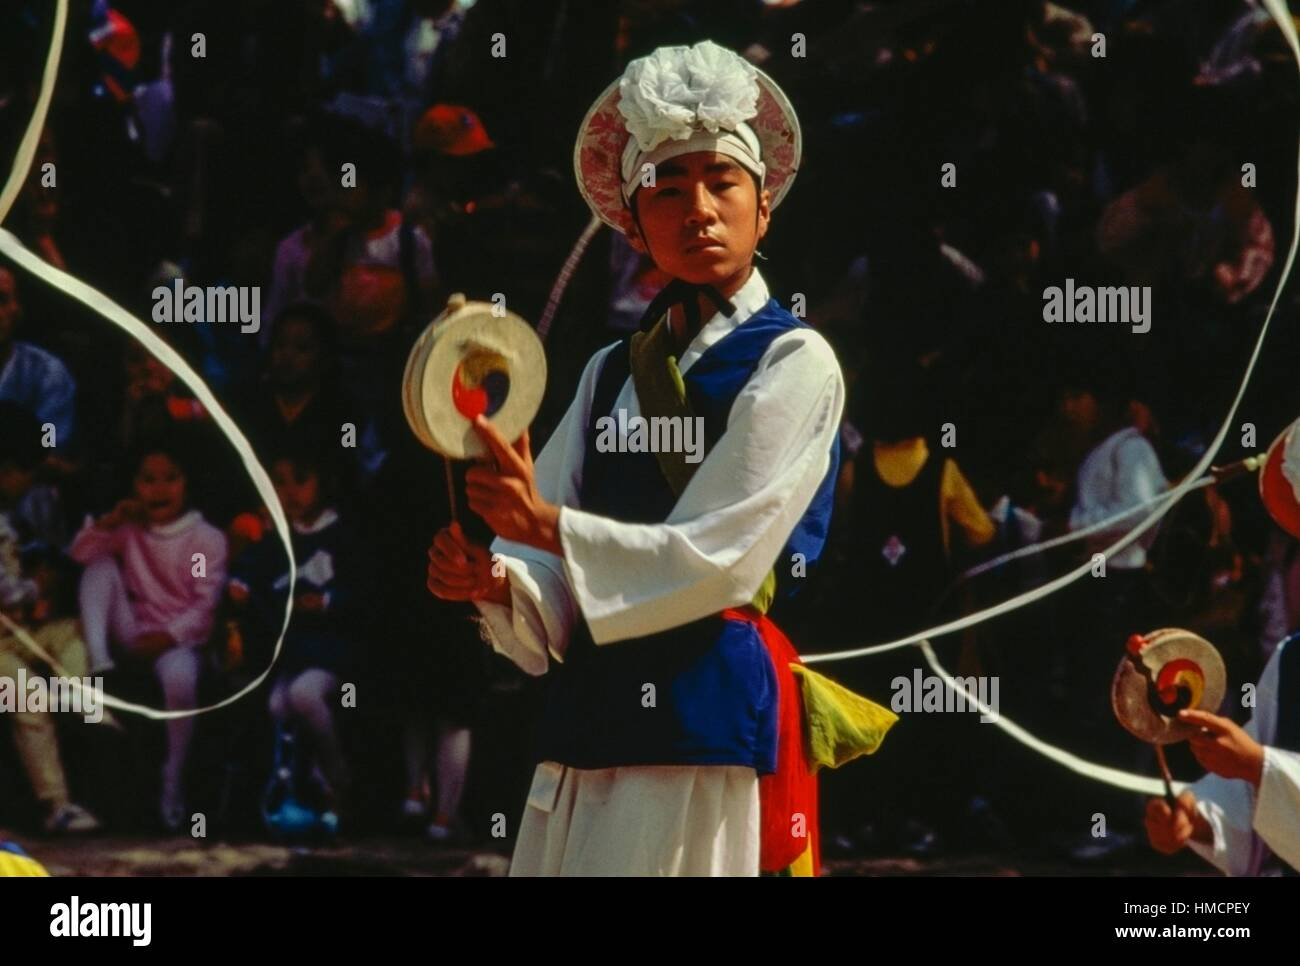 Male dancer, Olympic stadium in Seoul, South Korea. - Stock Image